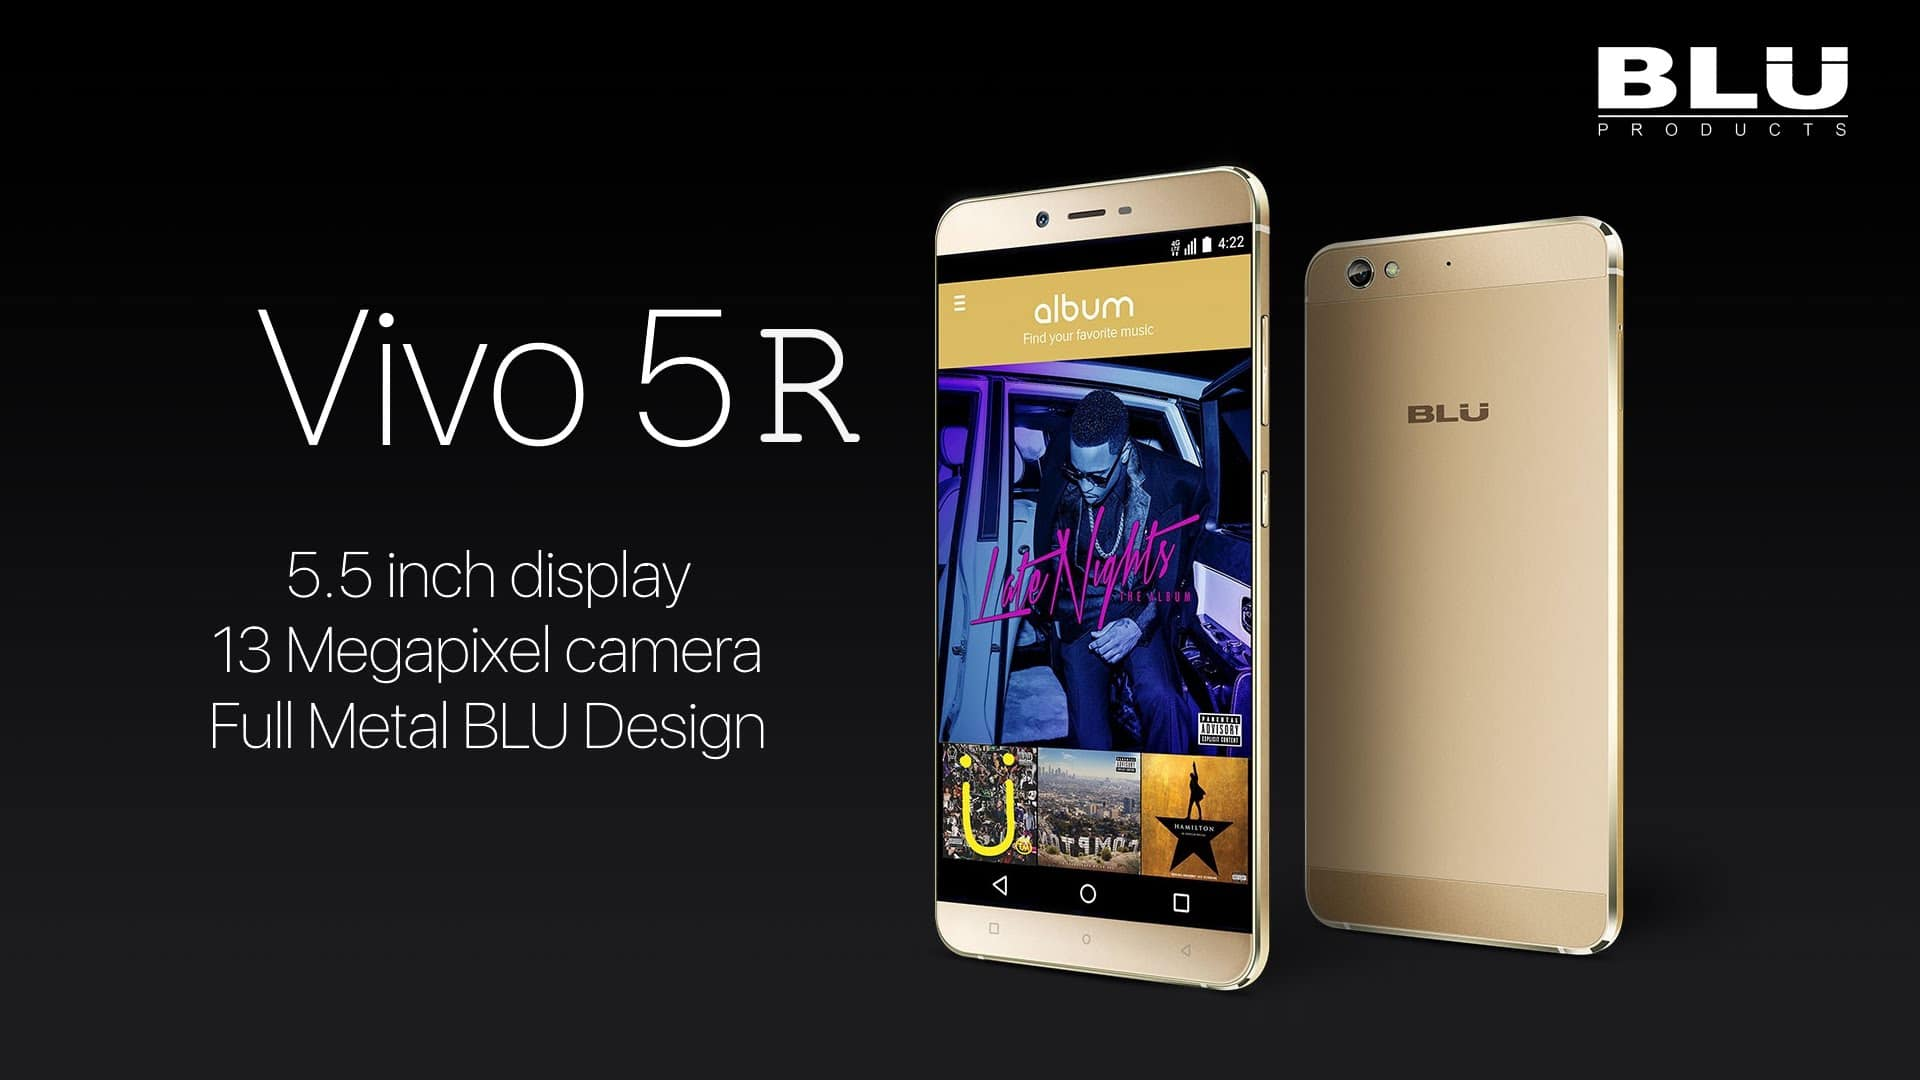 BLU vivo 5R announced